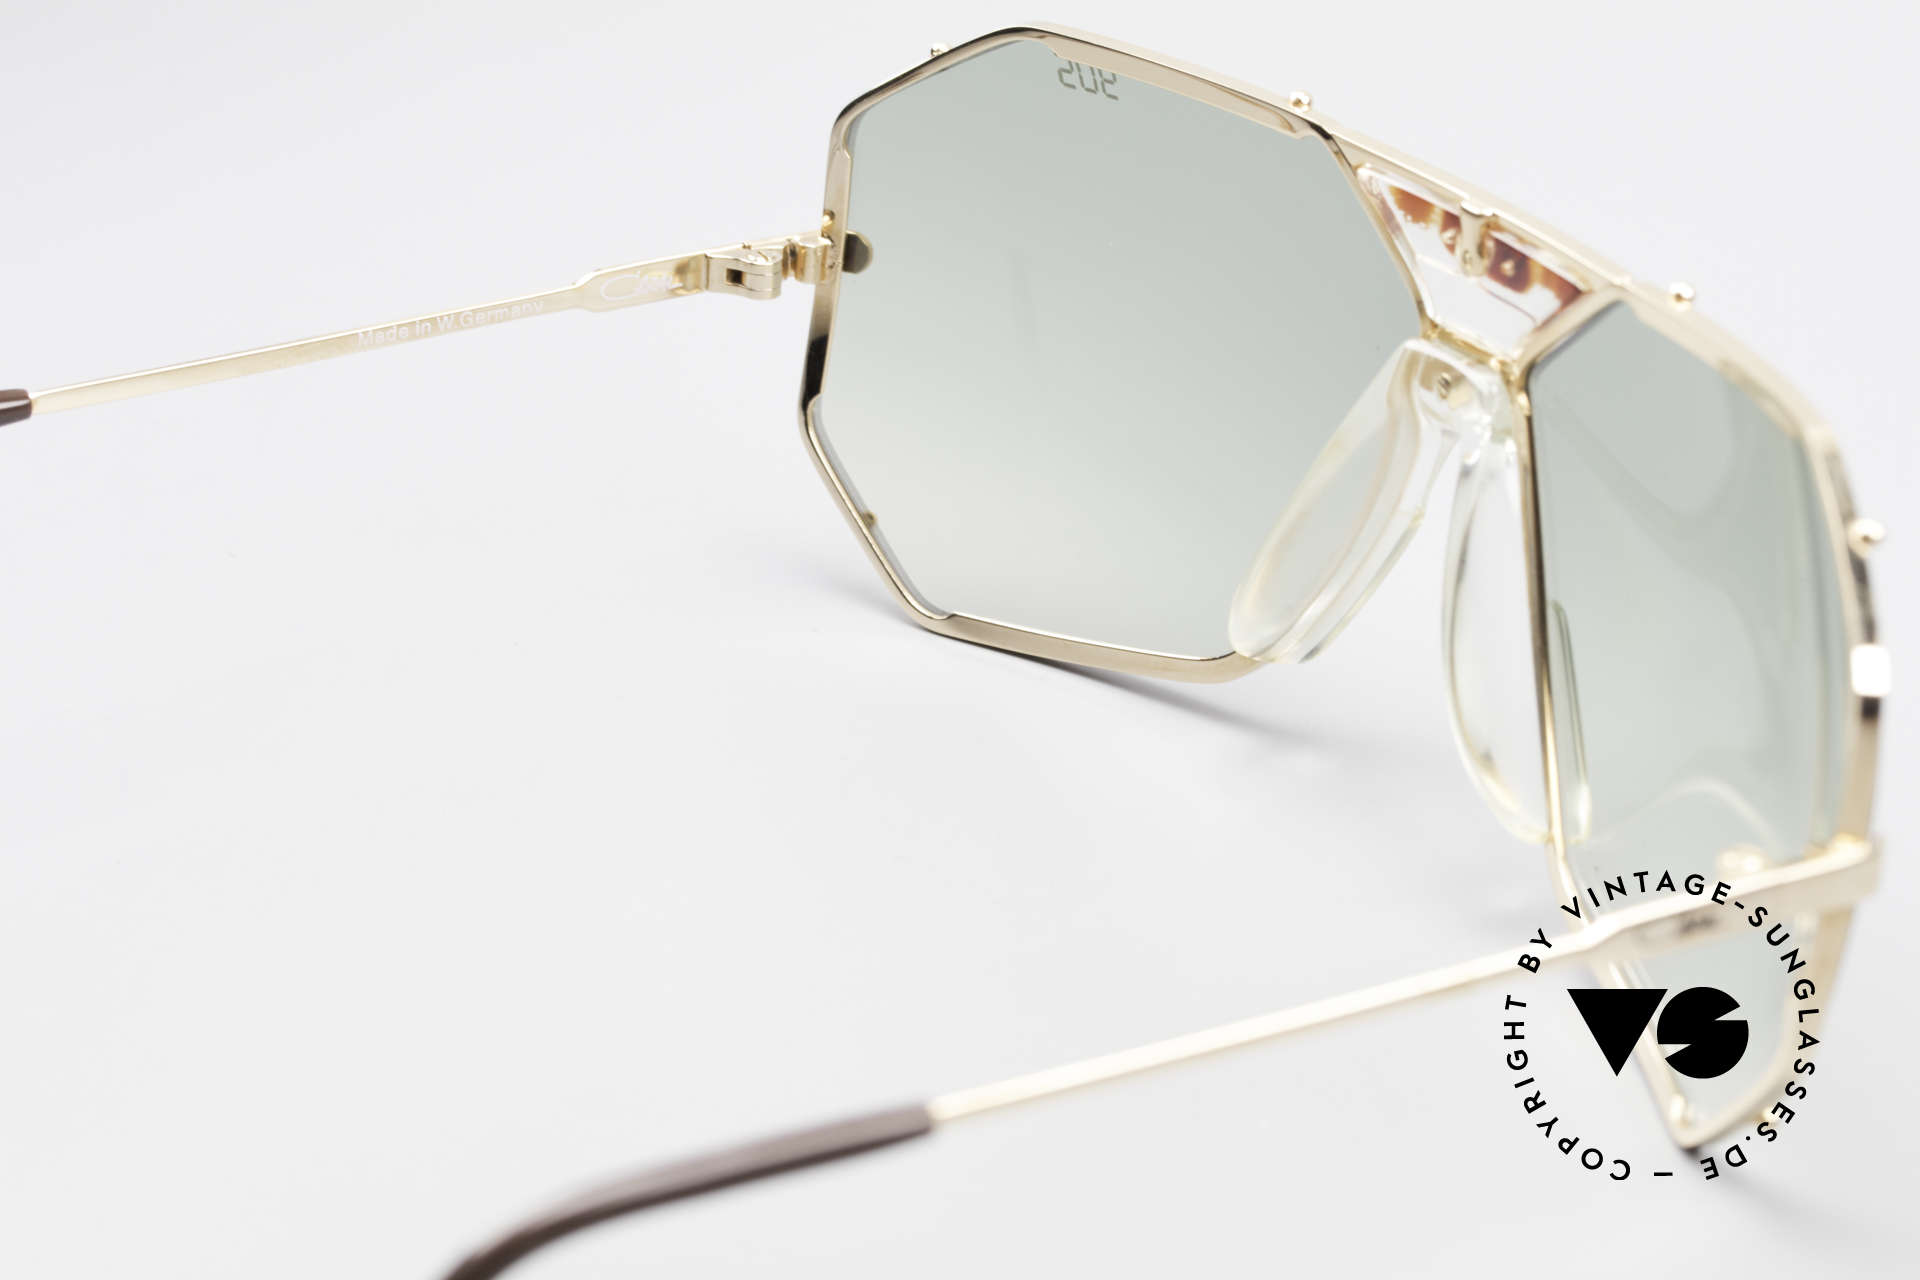 "Cazal 905 Gwen Stefani Sunglasses 80's, worn by Gwen Stefani (cover ""The Sweet Escape""), Made for Men"